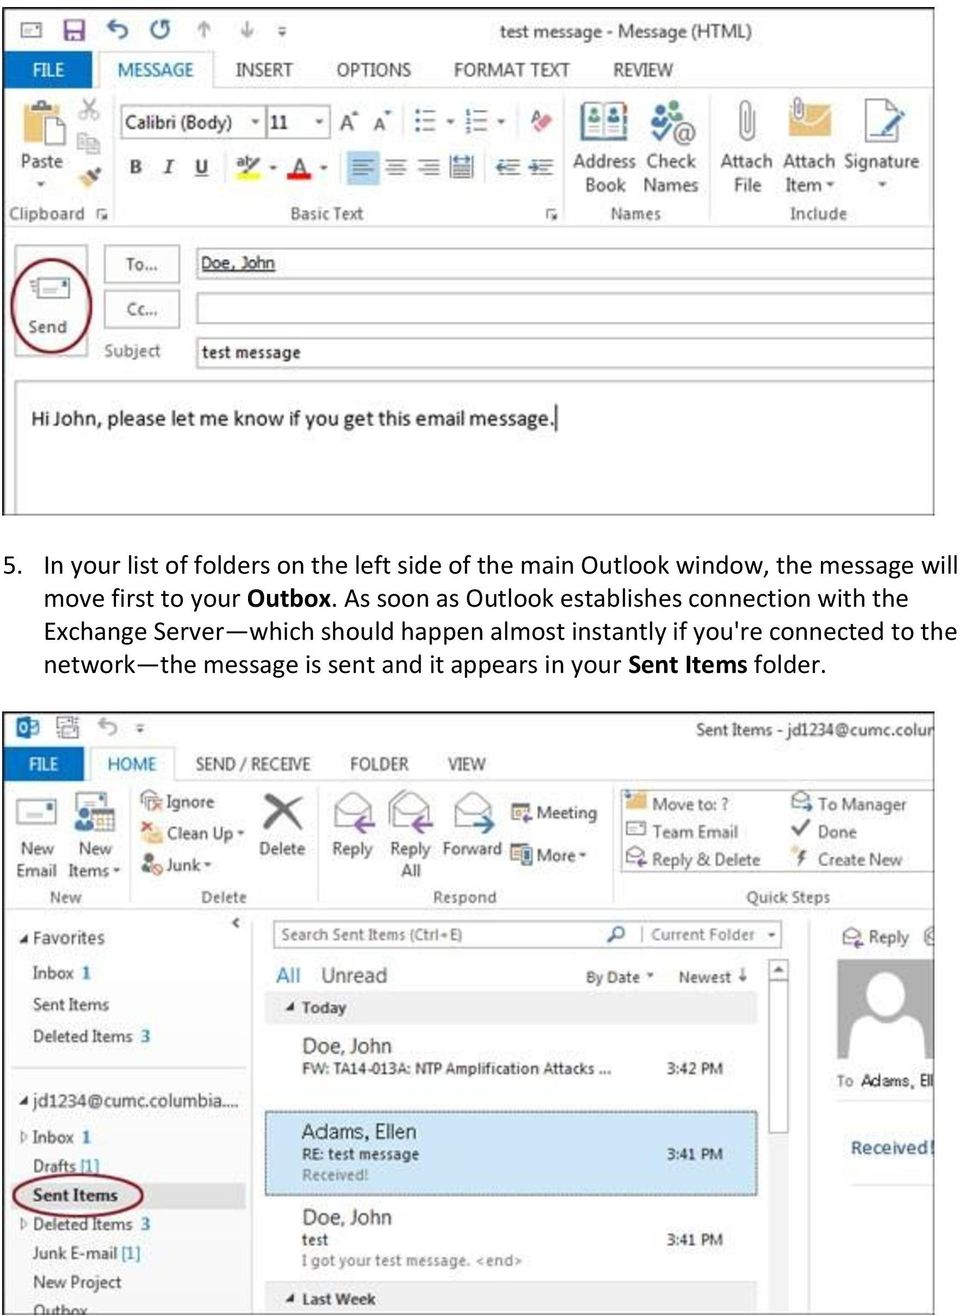 As soon as Outlook establishes connection with the Exchange Server which